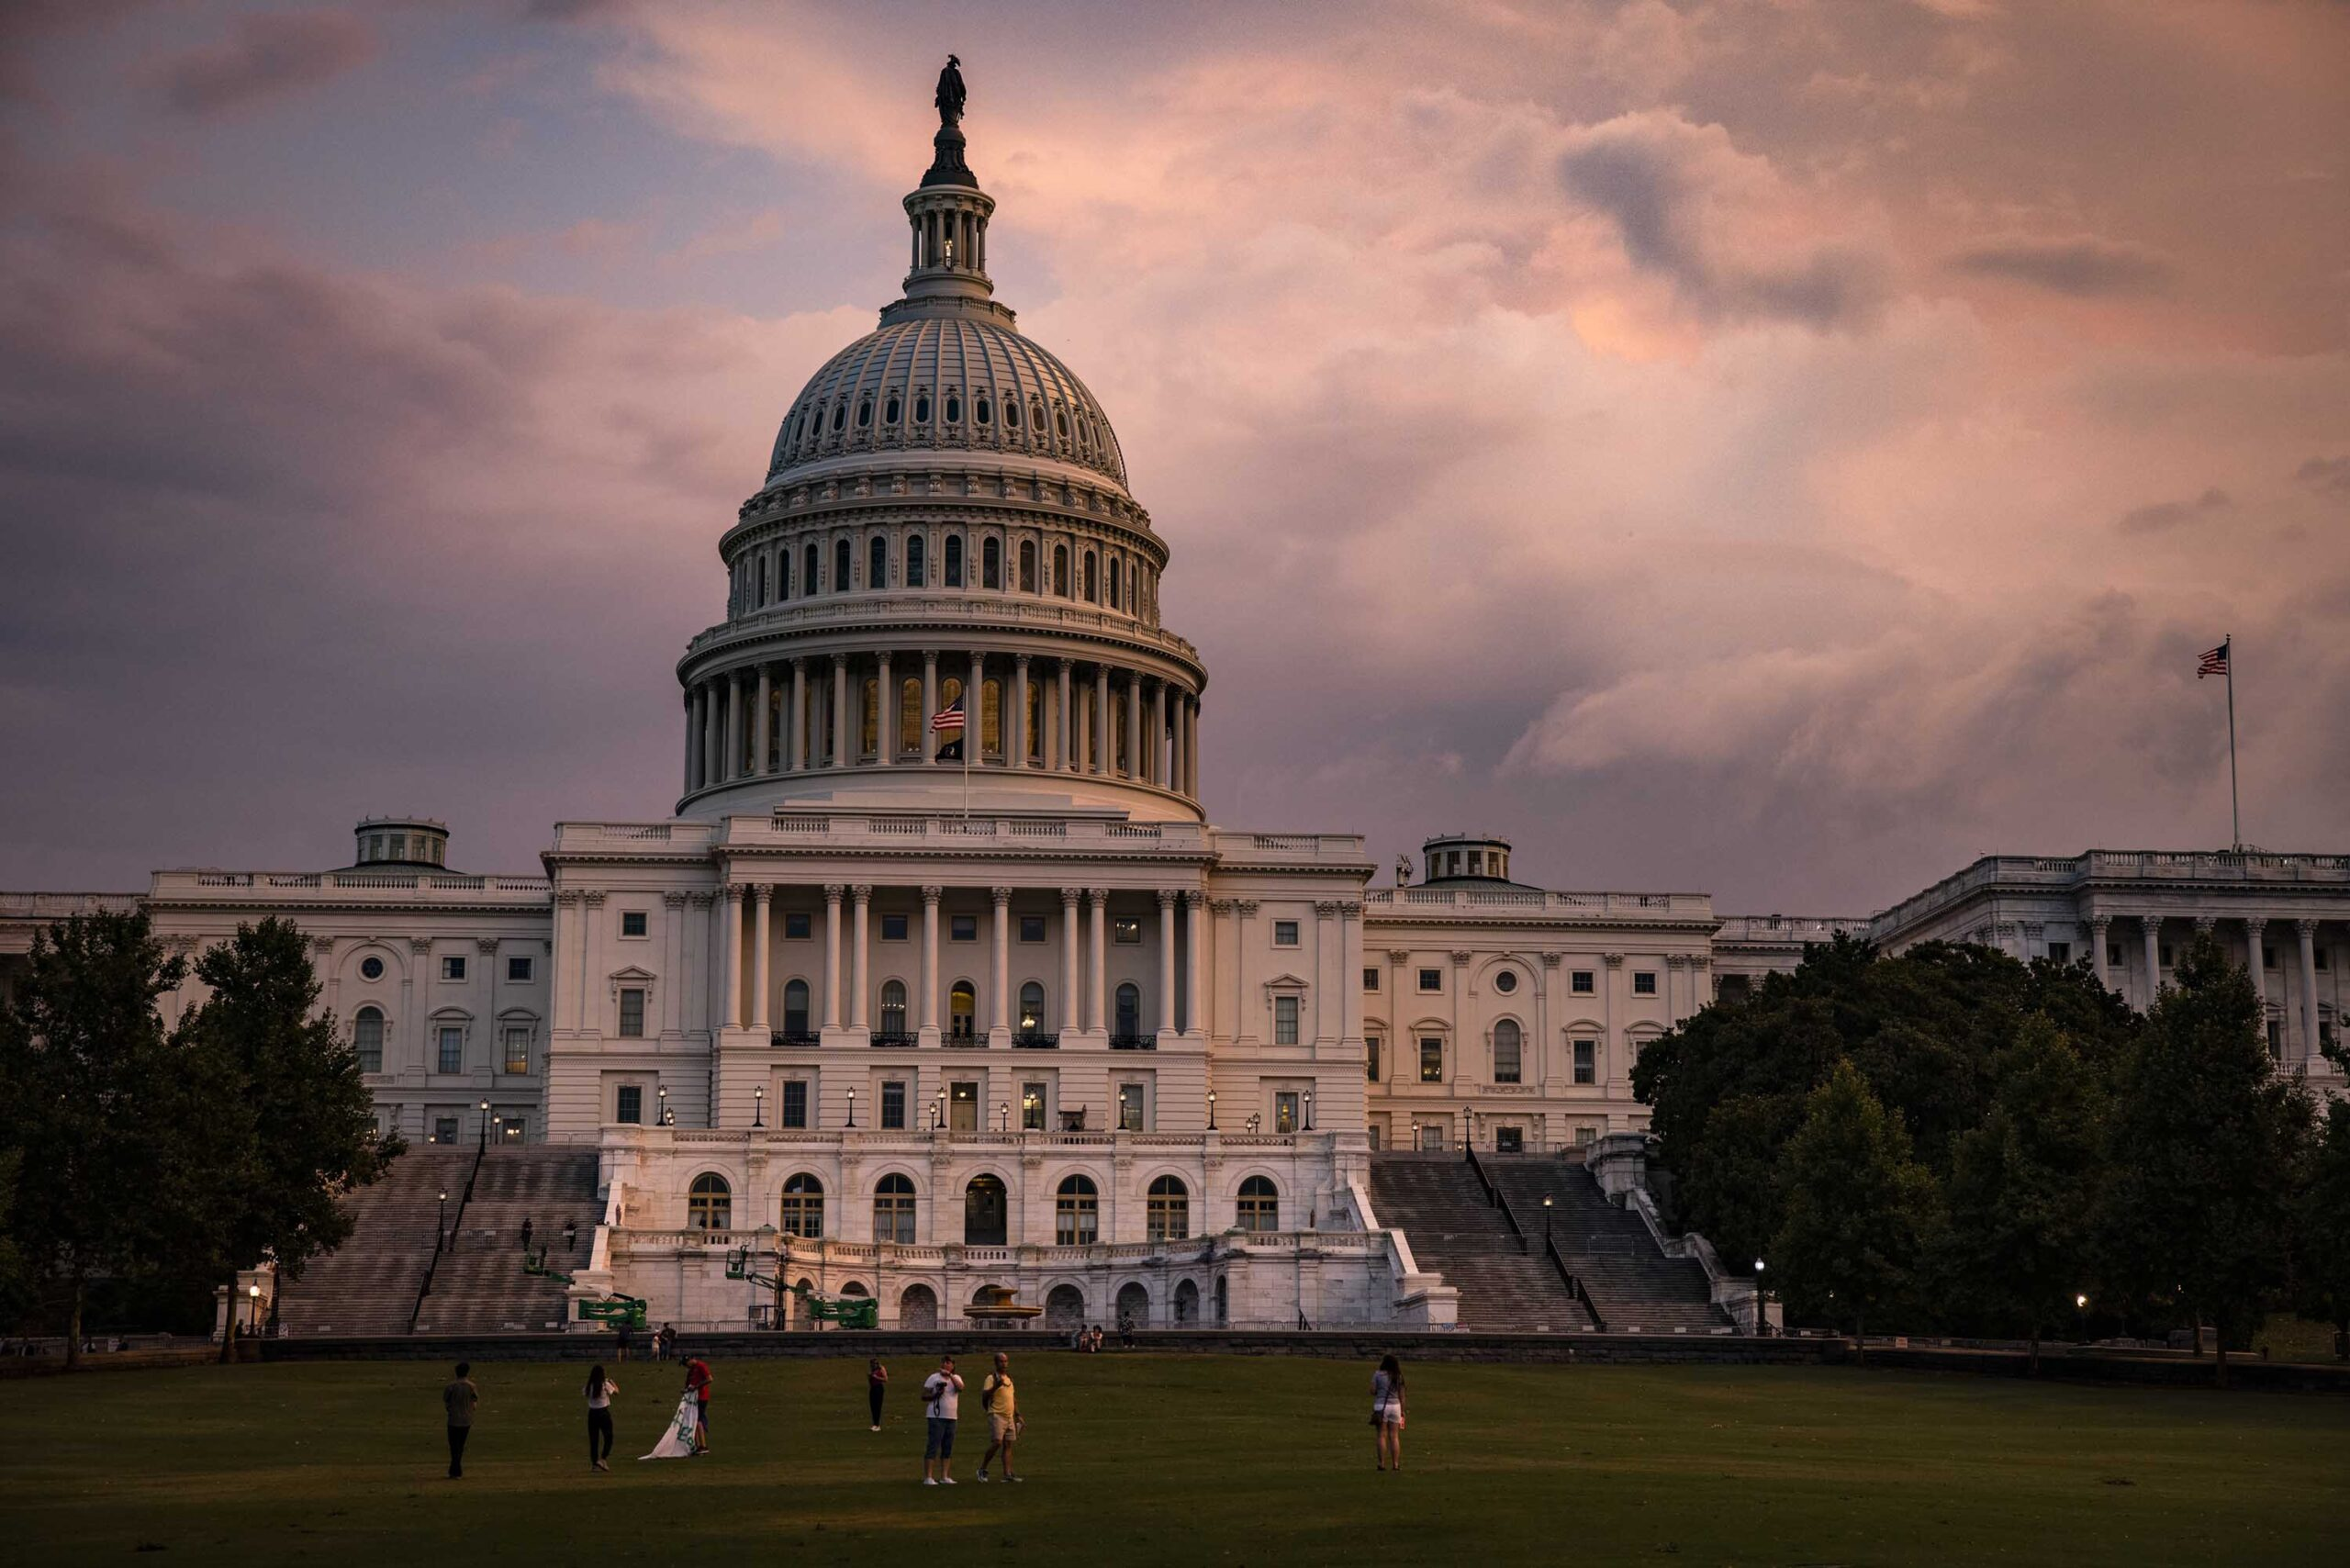 <i>Samuel Corum/Getty Images</i><br/>The U.S. Capitol Building is seen as the sun sets on it.